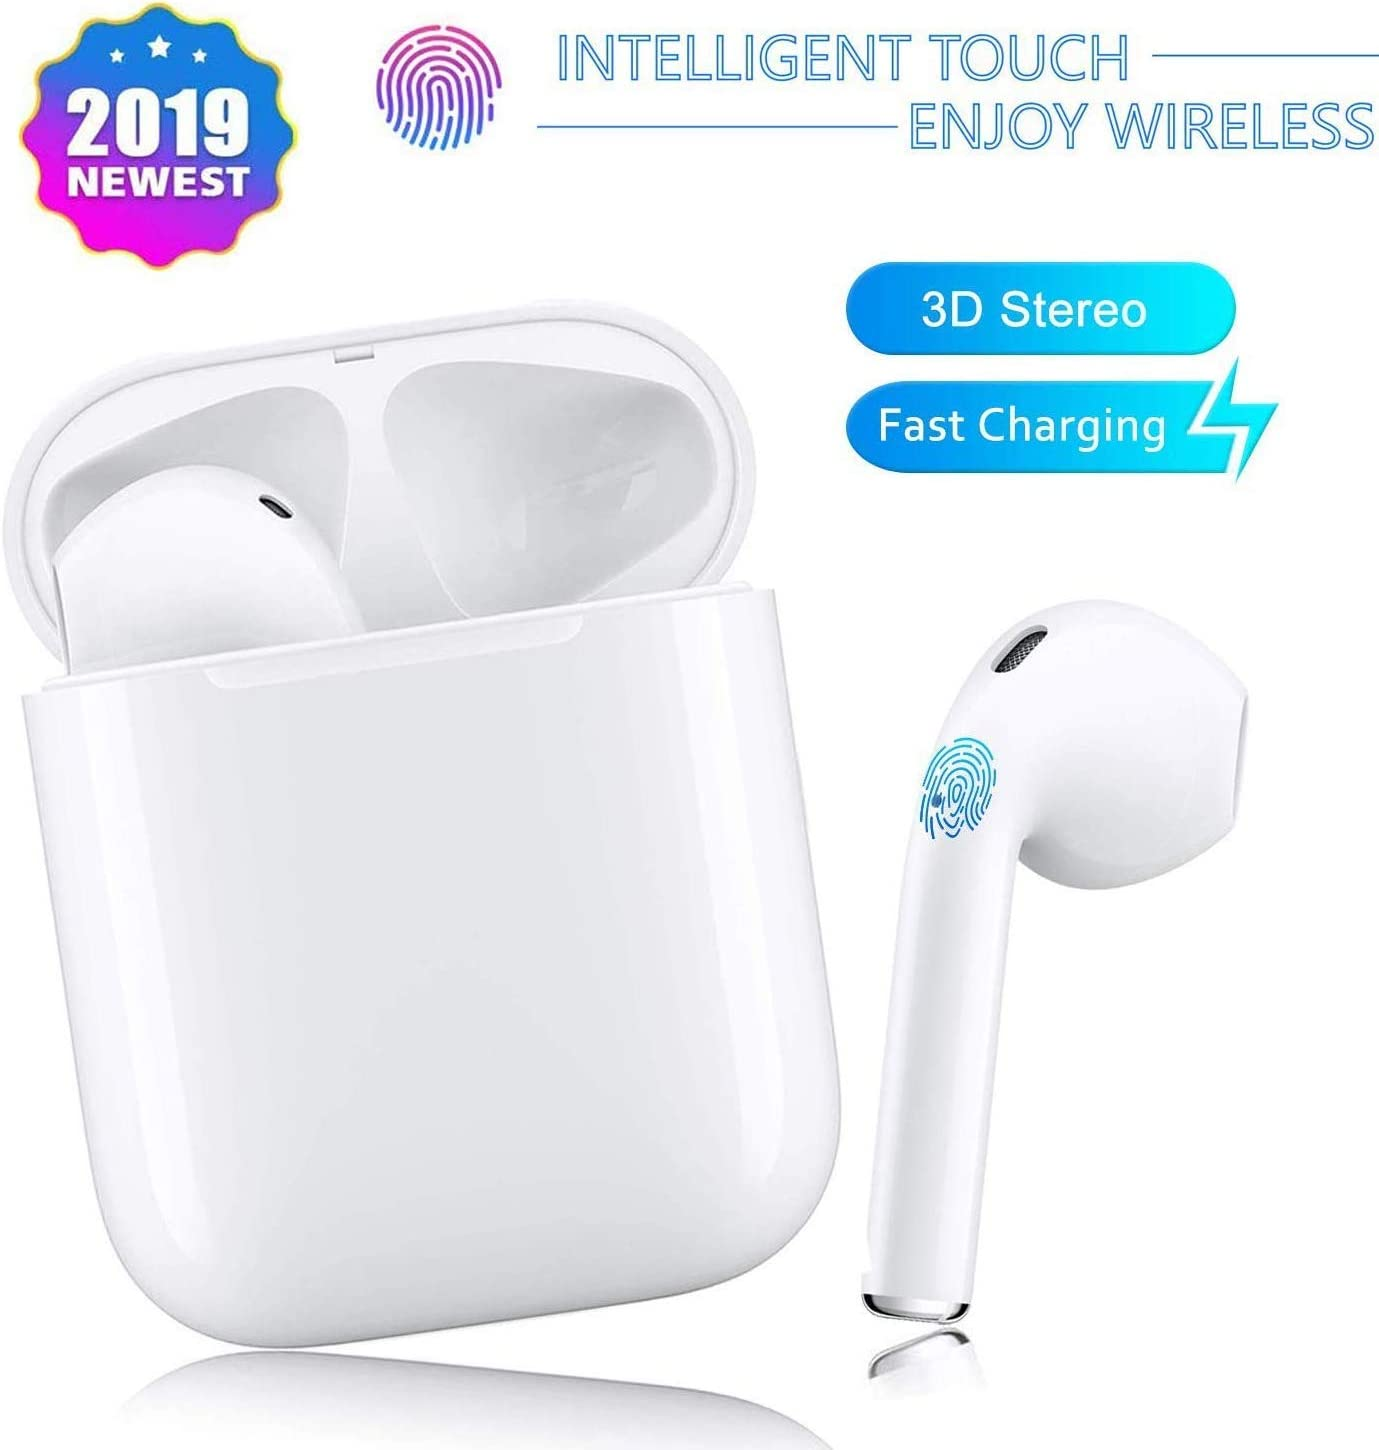 Bluetooth Headphones,Bluetooth 5.0 Wireless Earbuds,Noise Canceling 3D Stereo IPX5 Waterproof Sports Headset,Pop-ups Auto Pairing,compatible with Apple Airpods Android Iphone